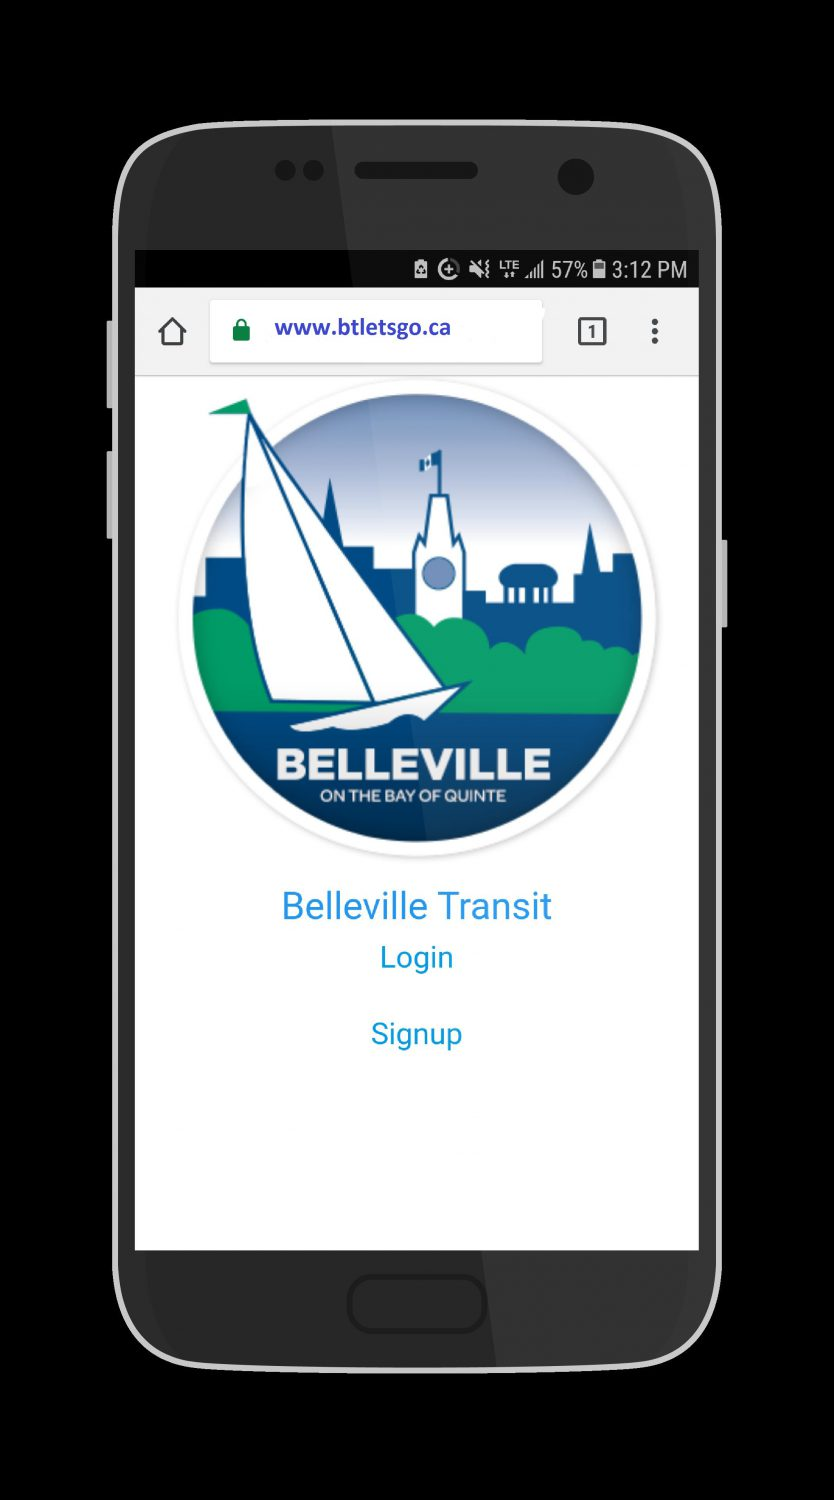 A black cellphone. On the screen there is a white background, logo for the City of Belleville and text below: Belleville Transit, log in or sign up.